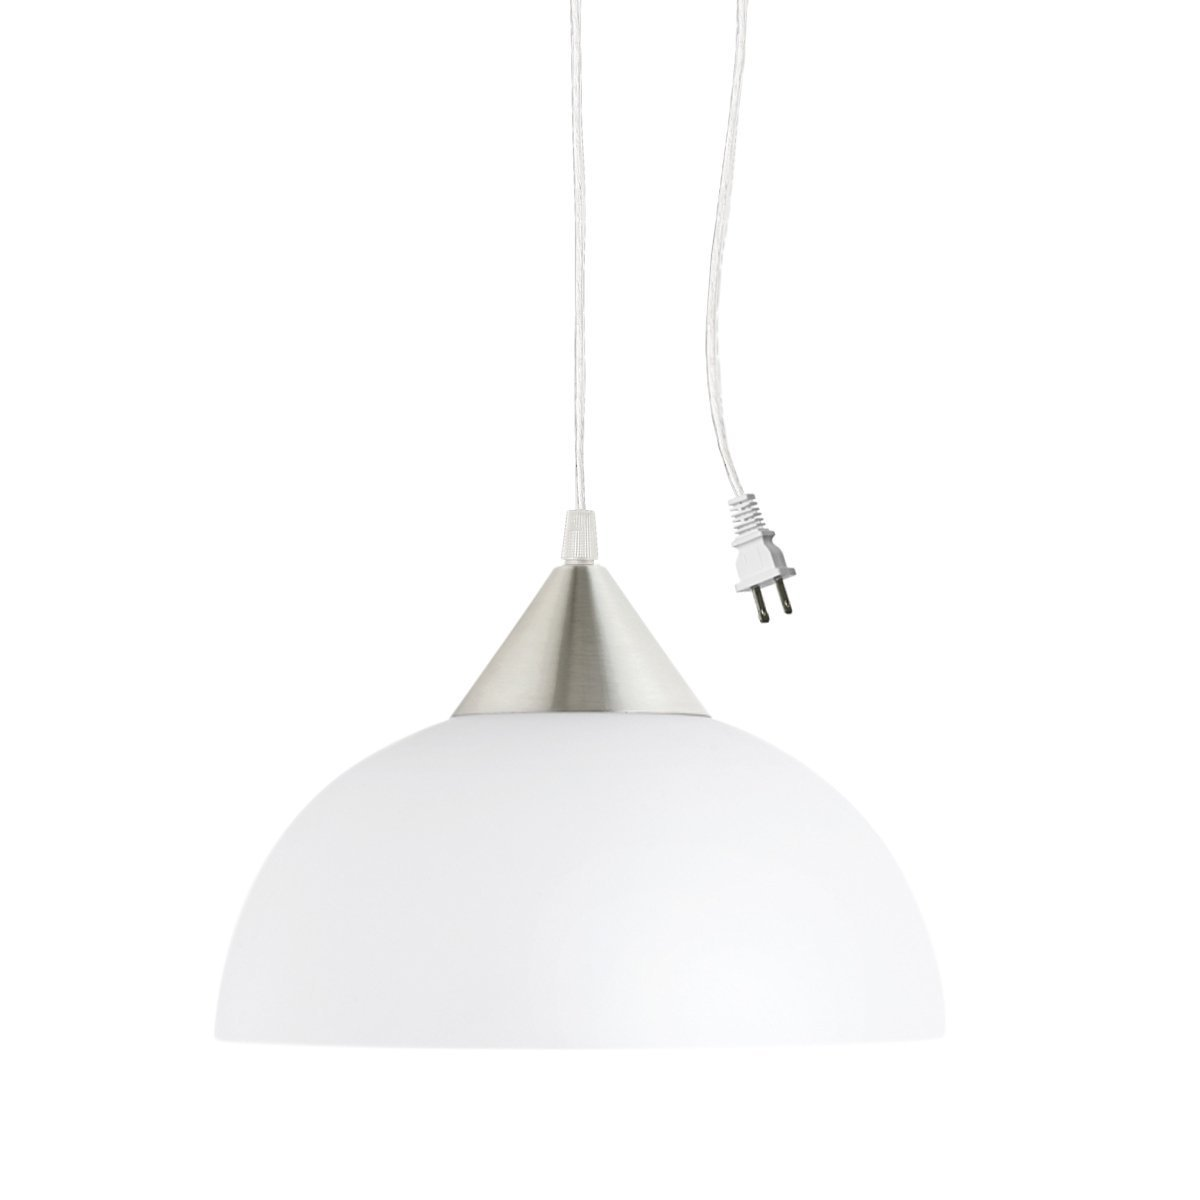 Newhouse Lighting Plug-in Hanging Pendant Light With Classic Lampshade and Timeless Design by Newhouse Lighting